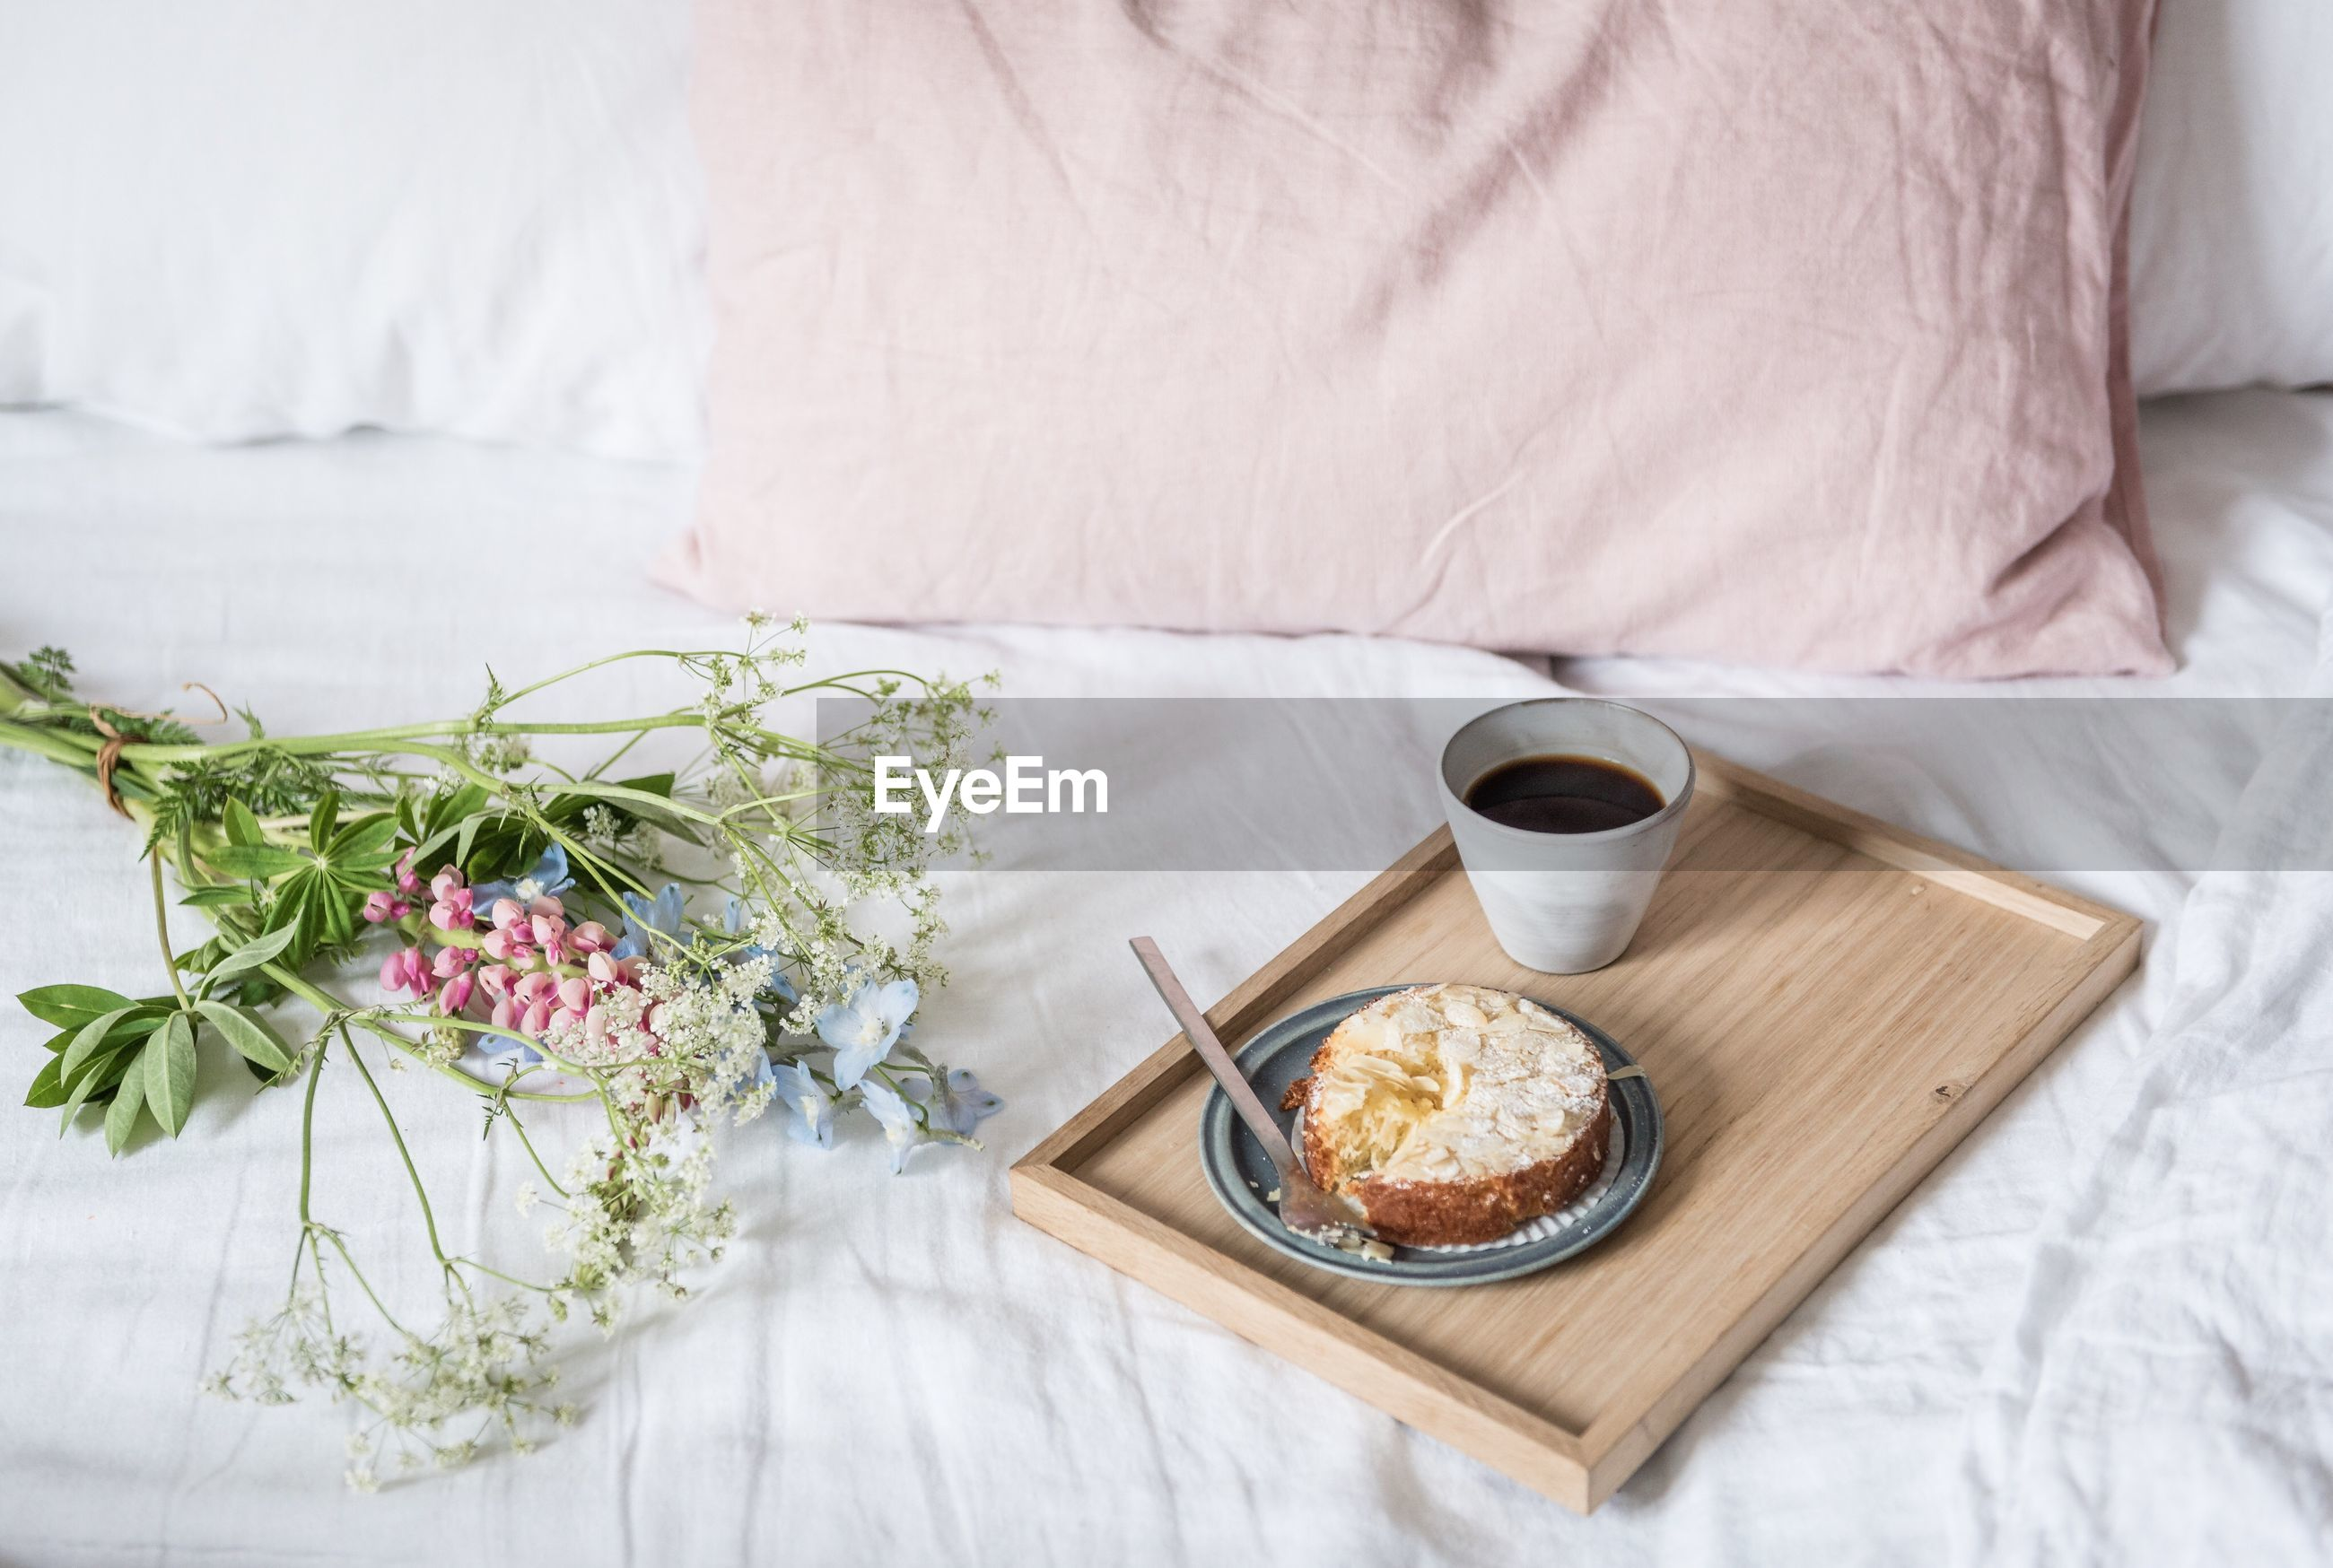 High angle view of breakfast on bed